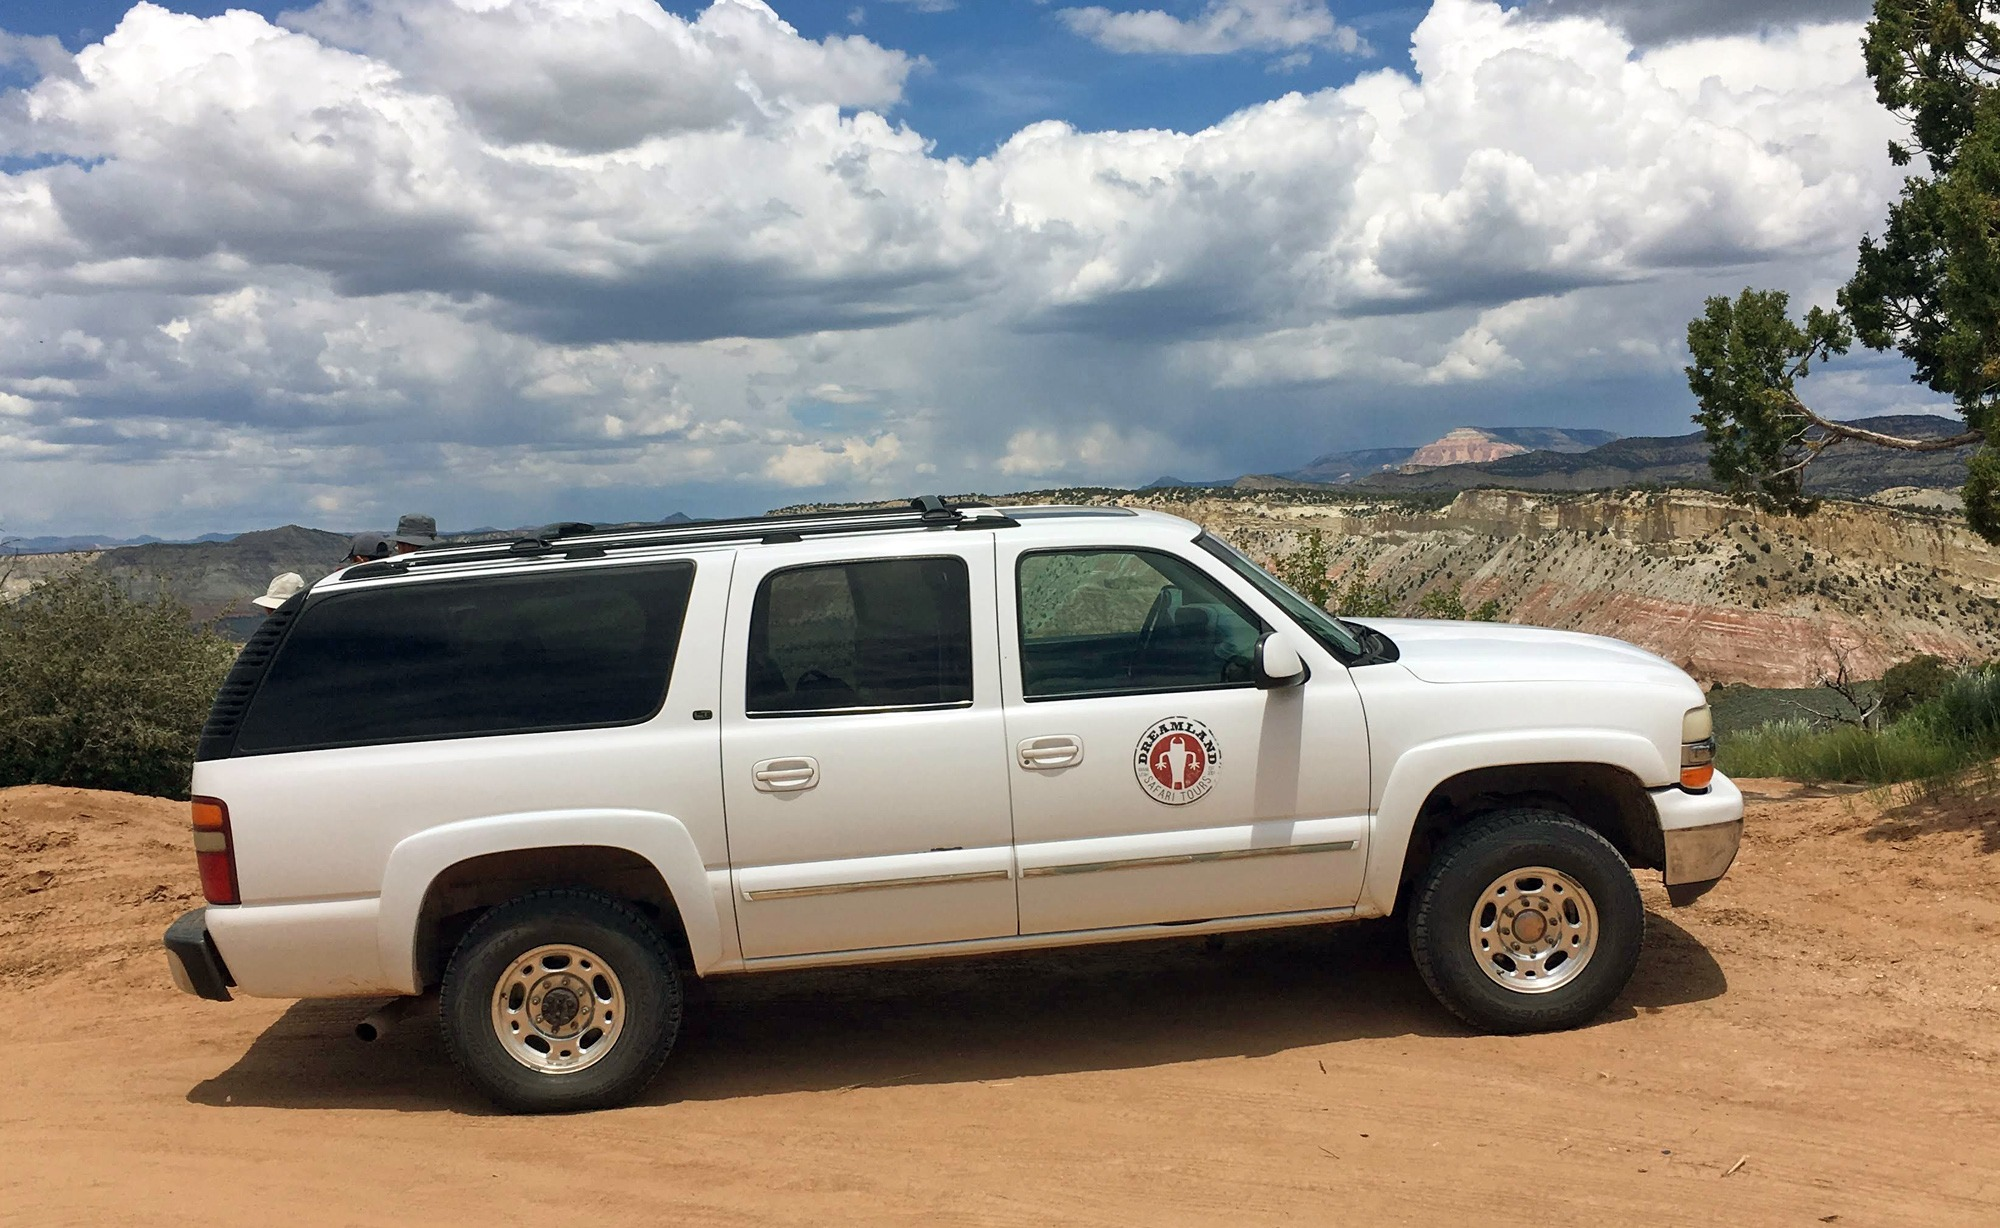 Dreamland Safari Tours truck at Grand Staircase-Escalante National Monument